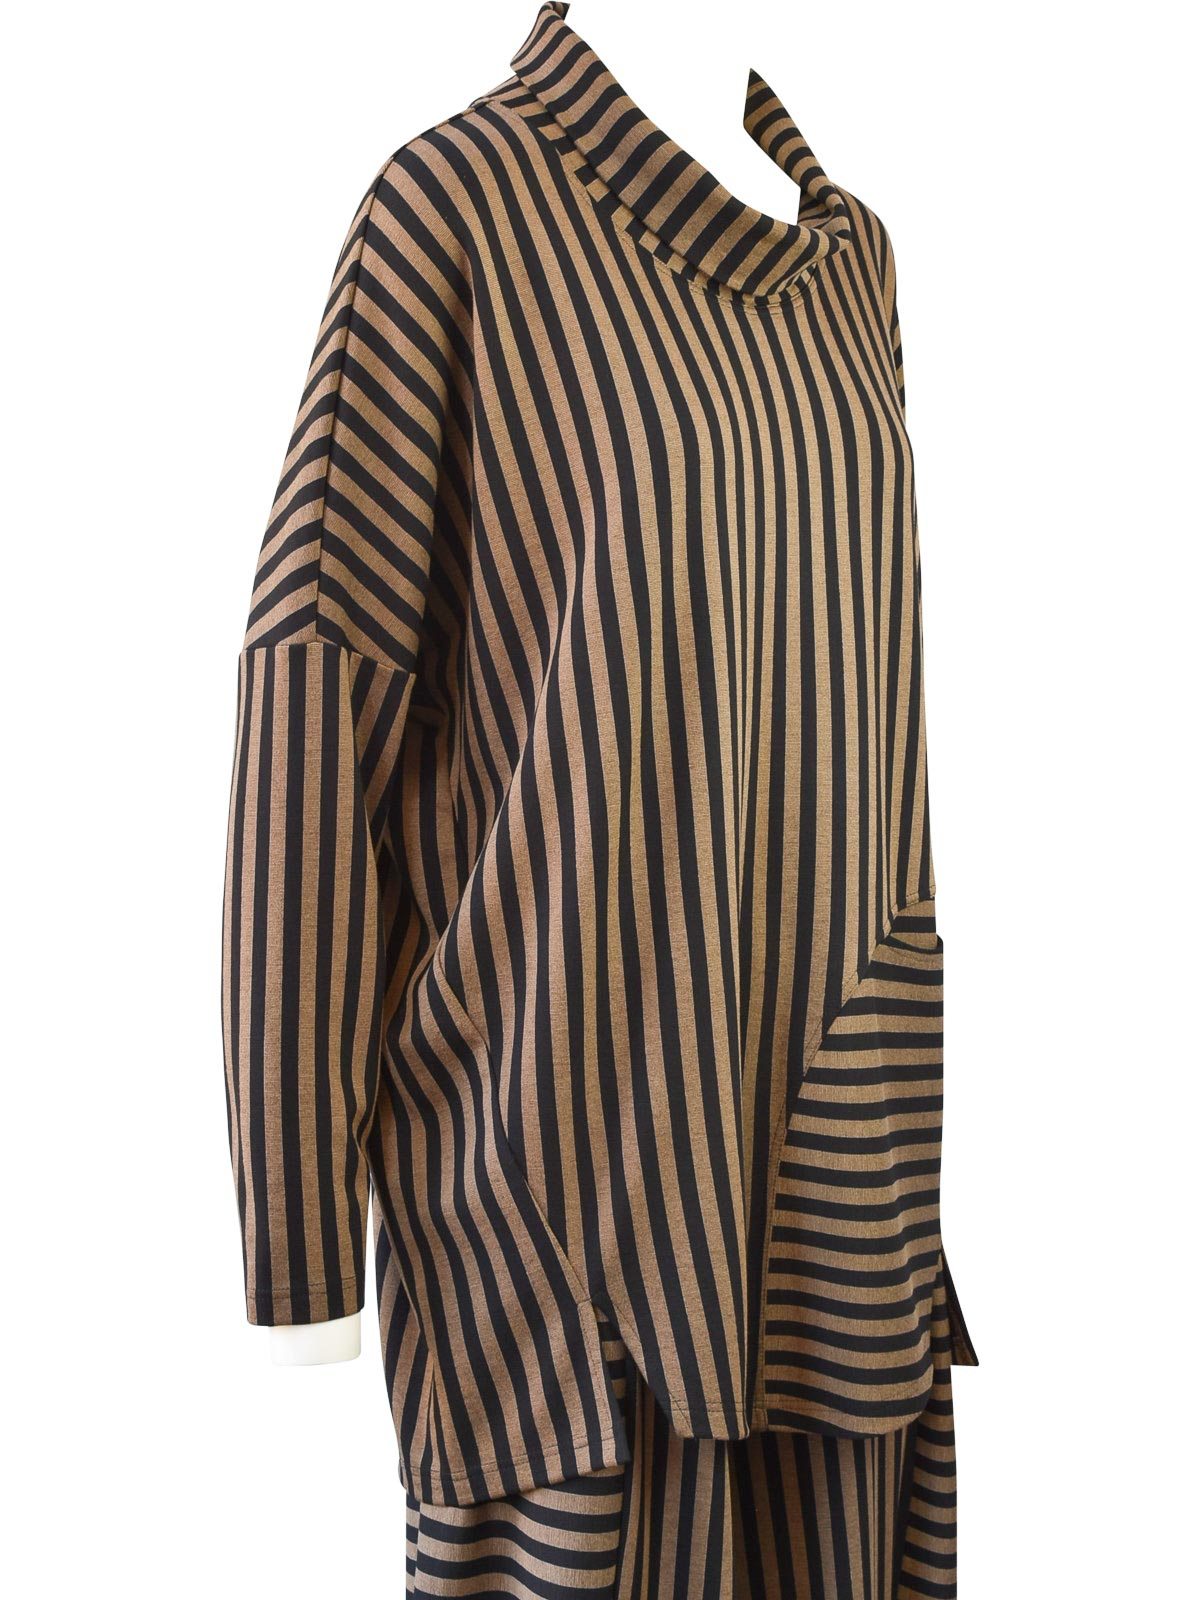 Q'Neel Striped Cowl Pocket Top, Black/Taupe